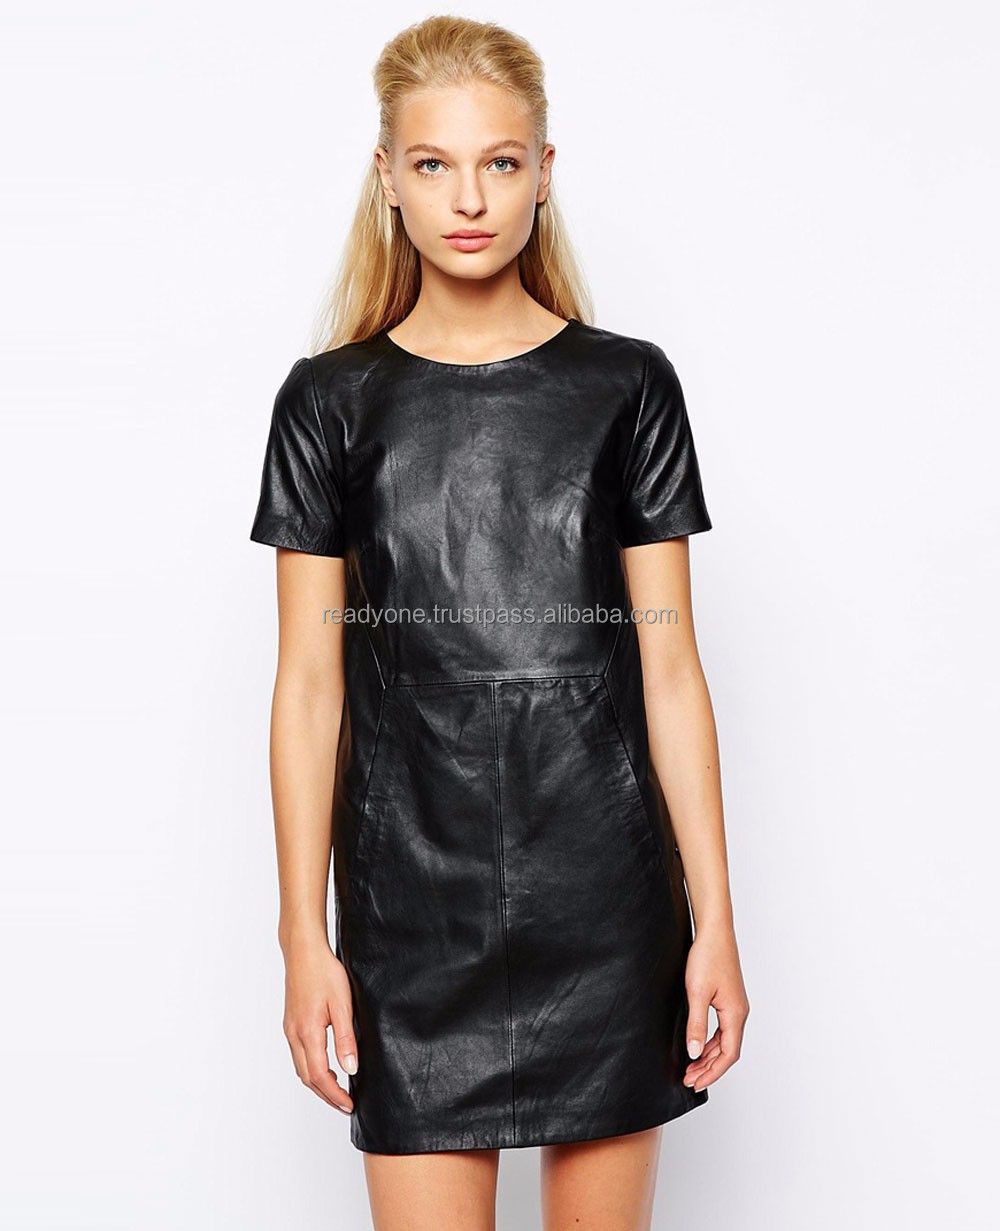 EUROPE STYLE NEW FASHION WOMEN'S DRESSES WITH LEATHER POCKET